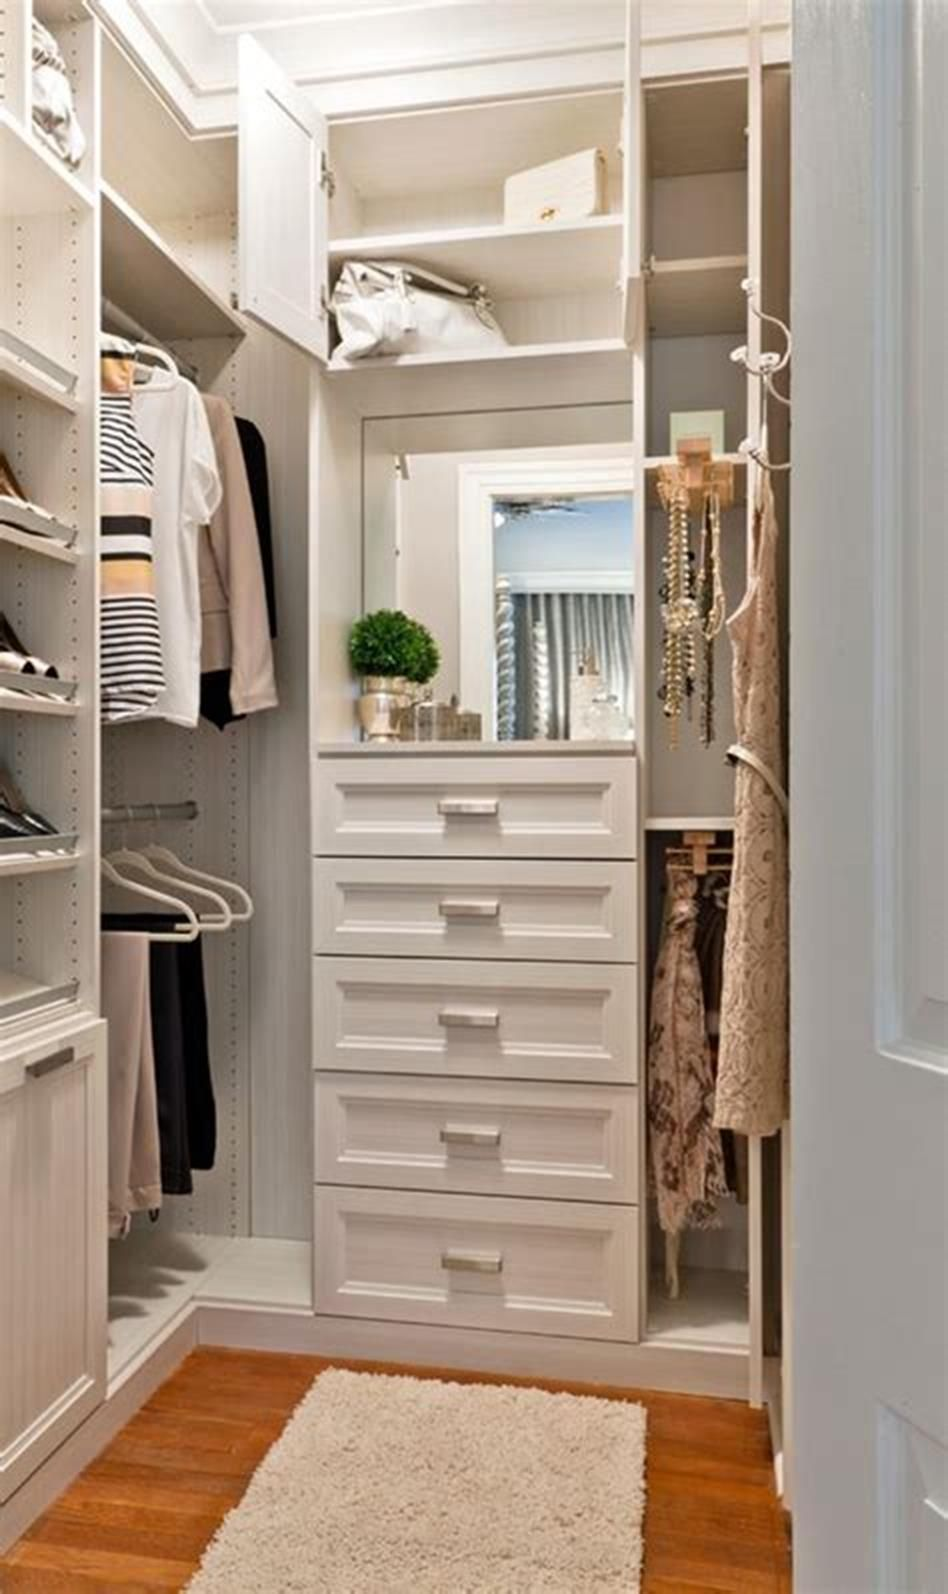 40 Best Small Walk In Bedroom Closet Organization and